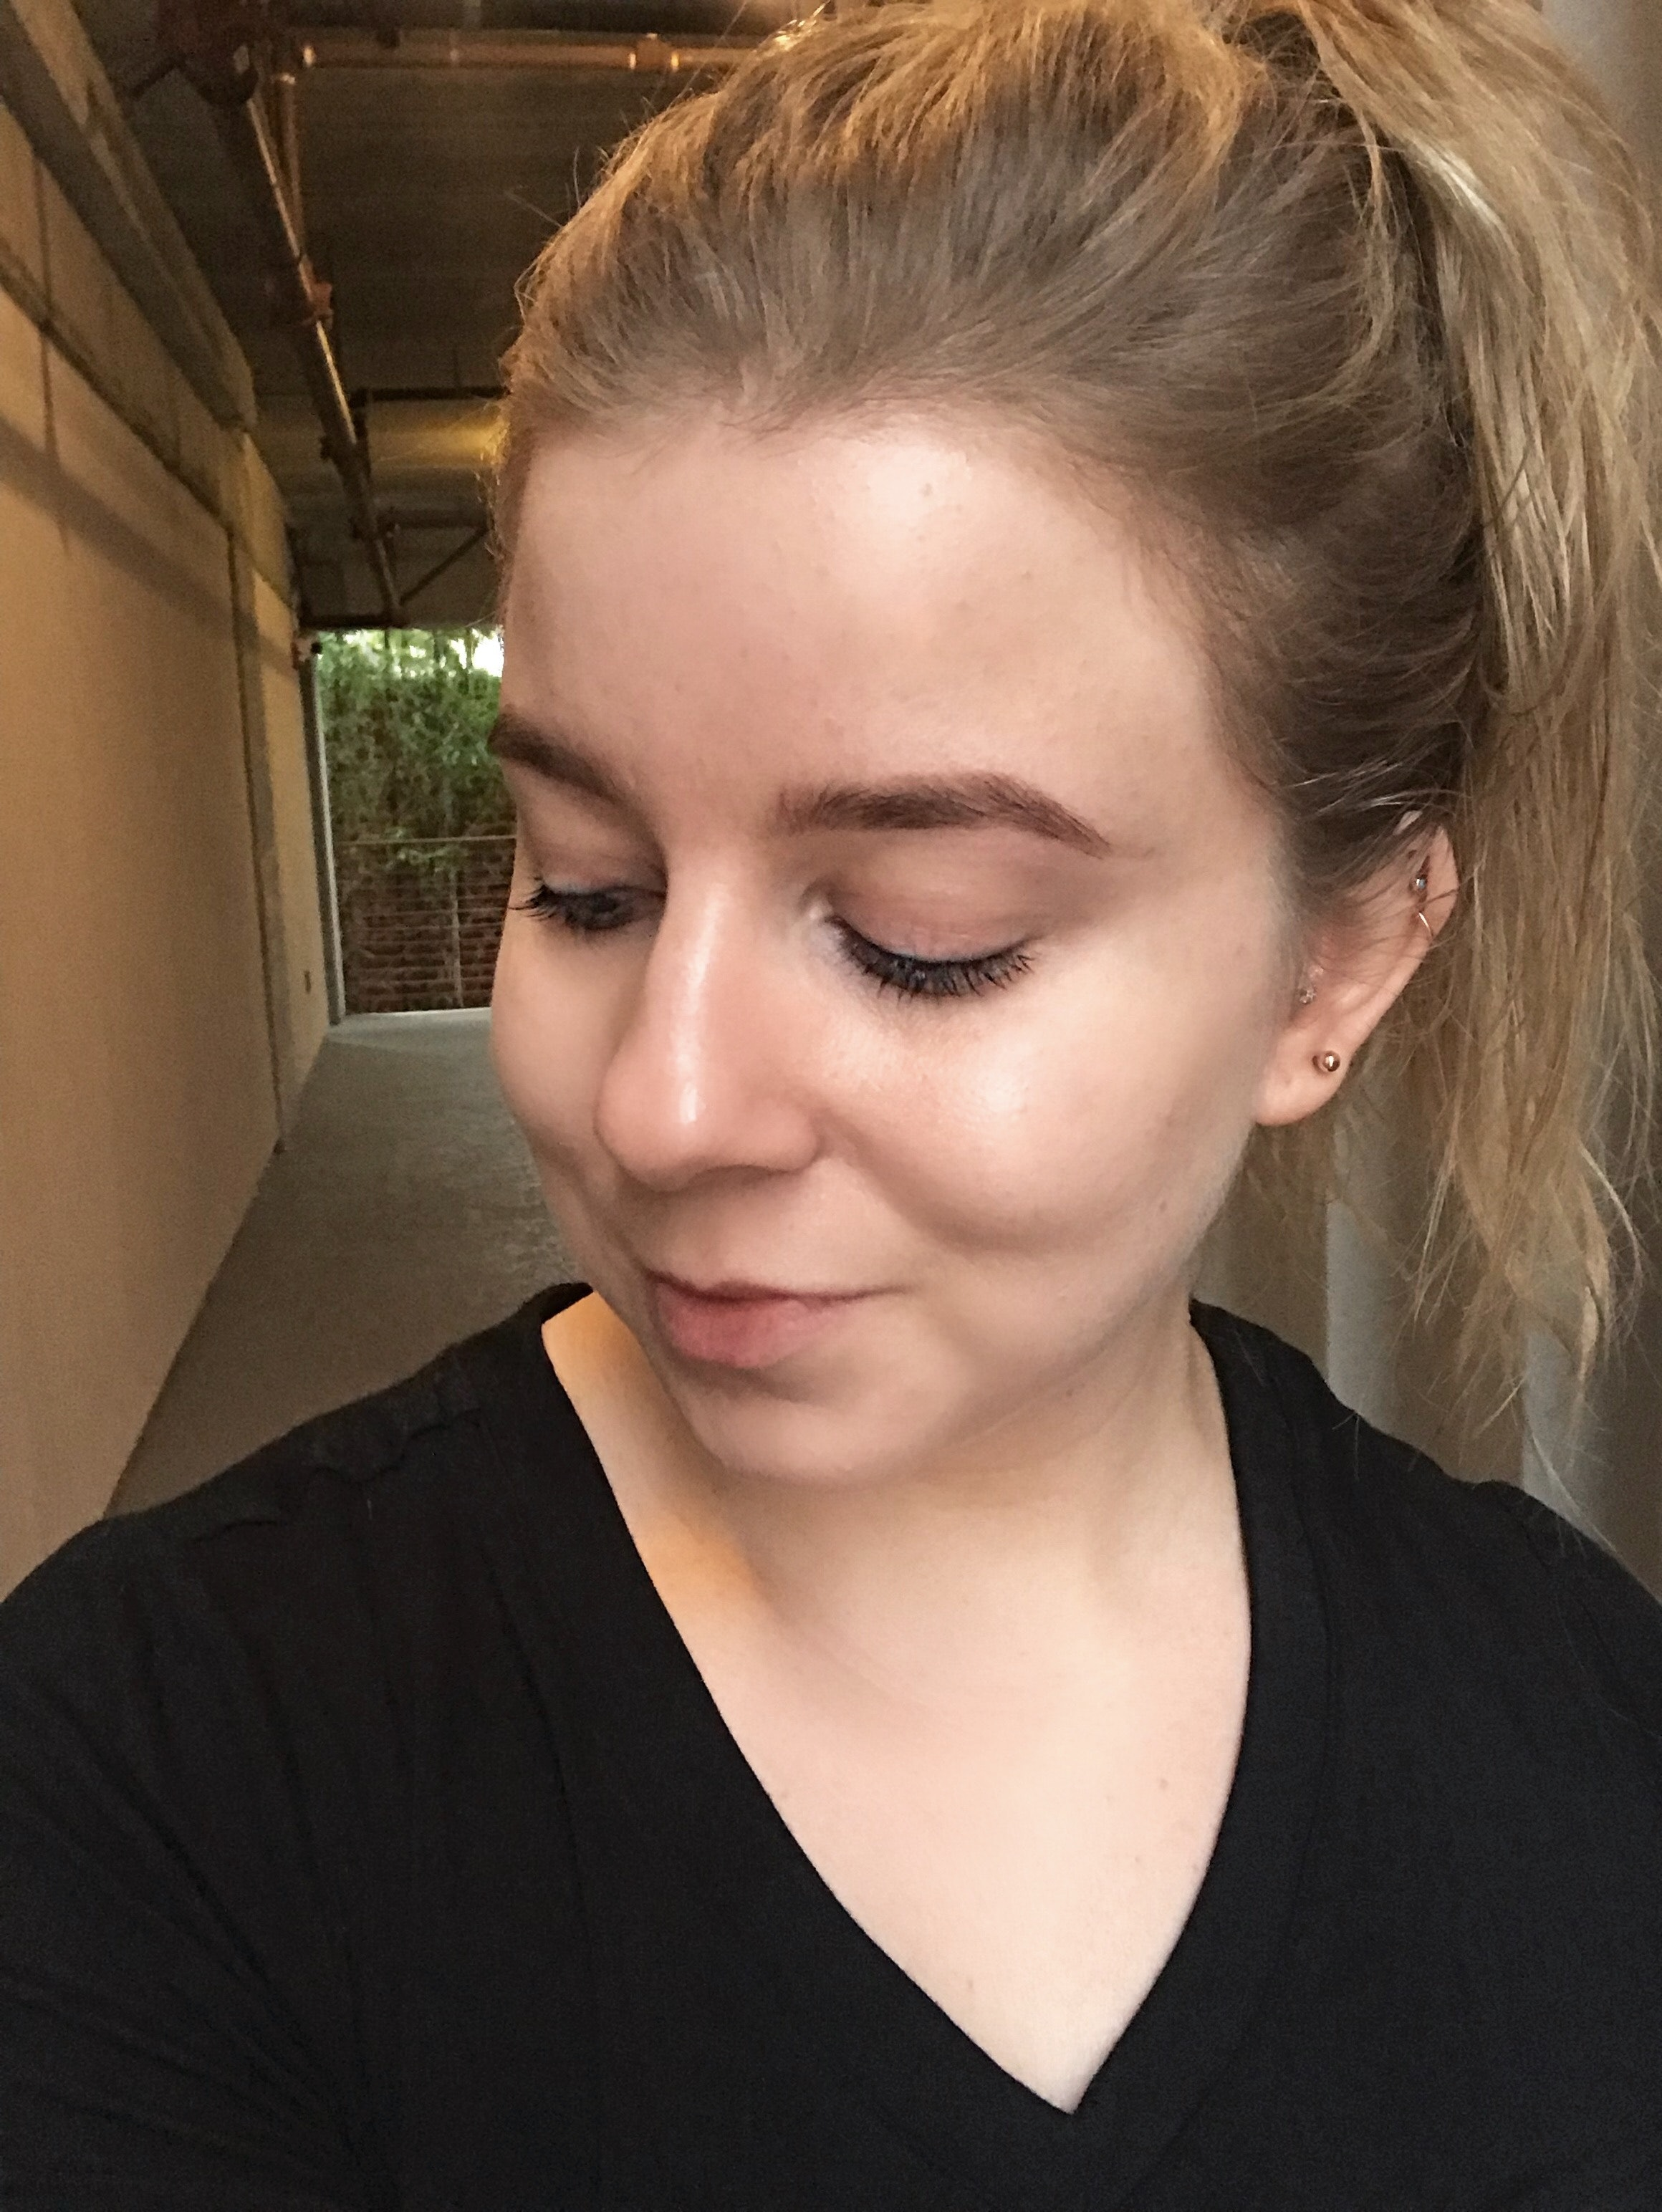 Is Microblading Worth It? Here's What I Wish I Had Known